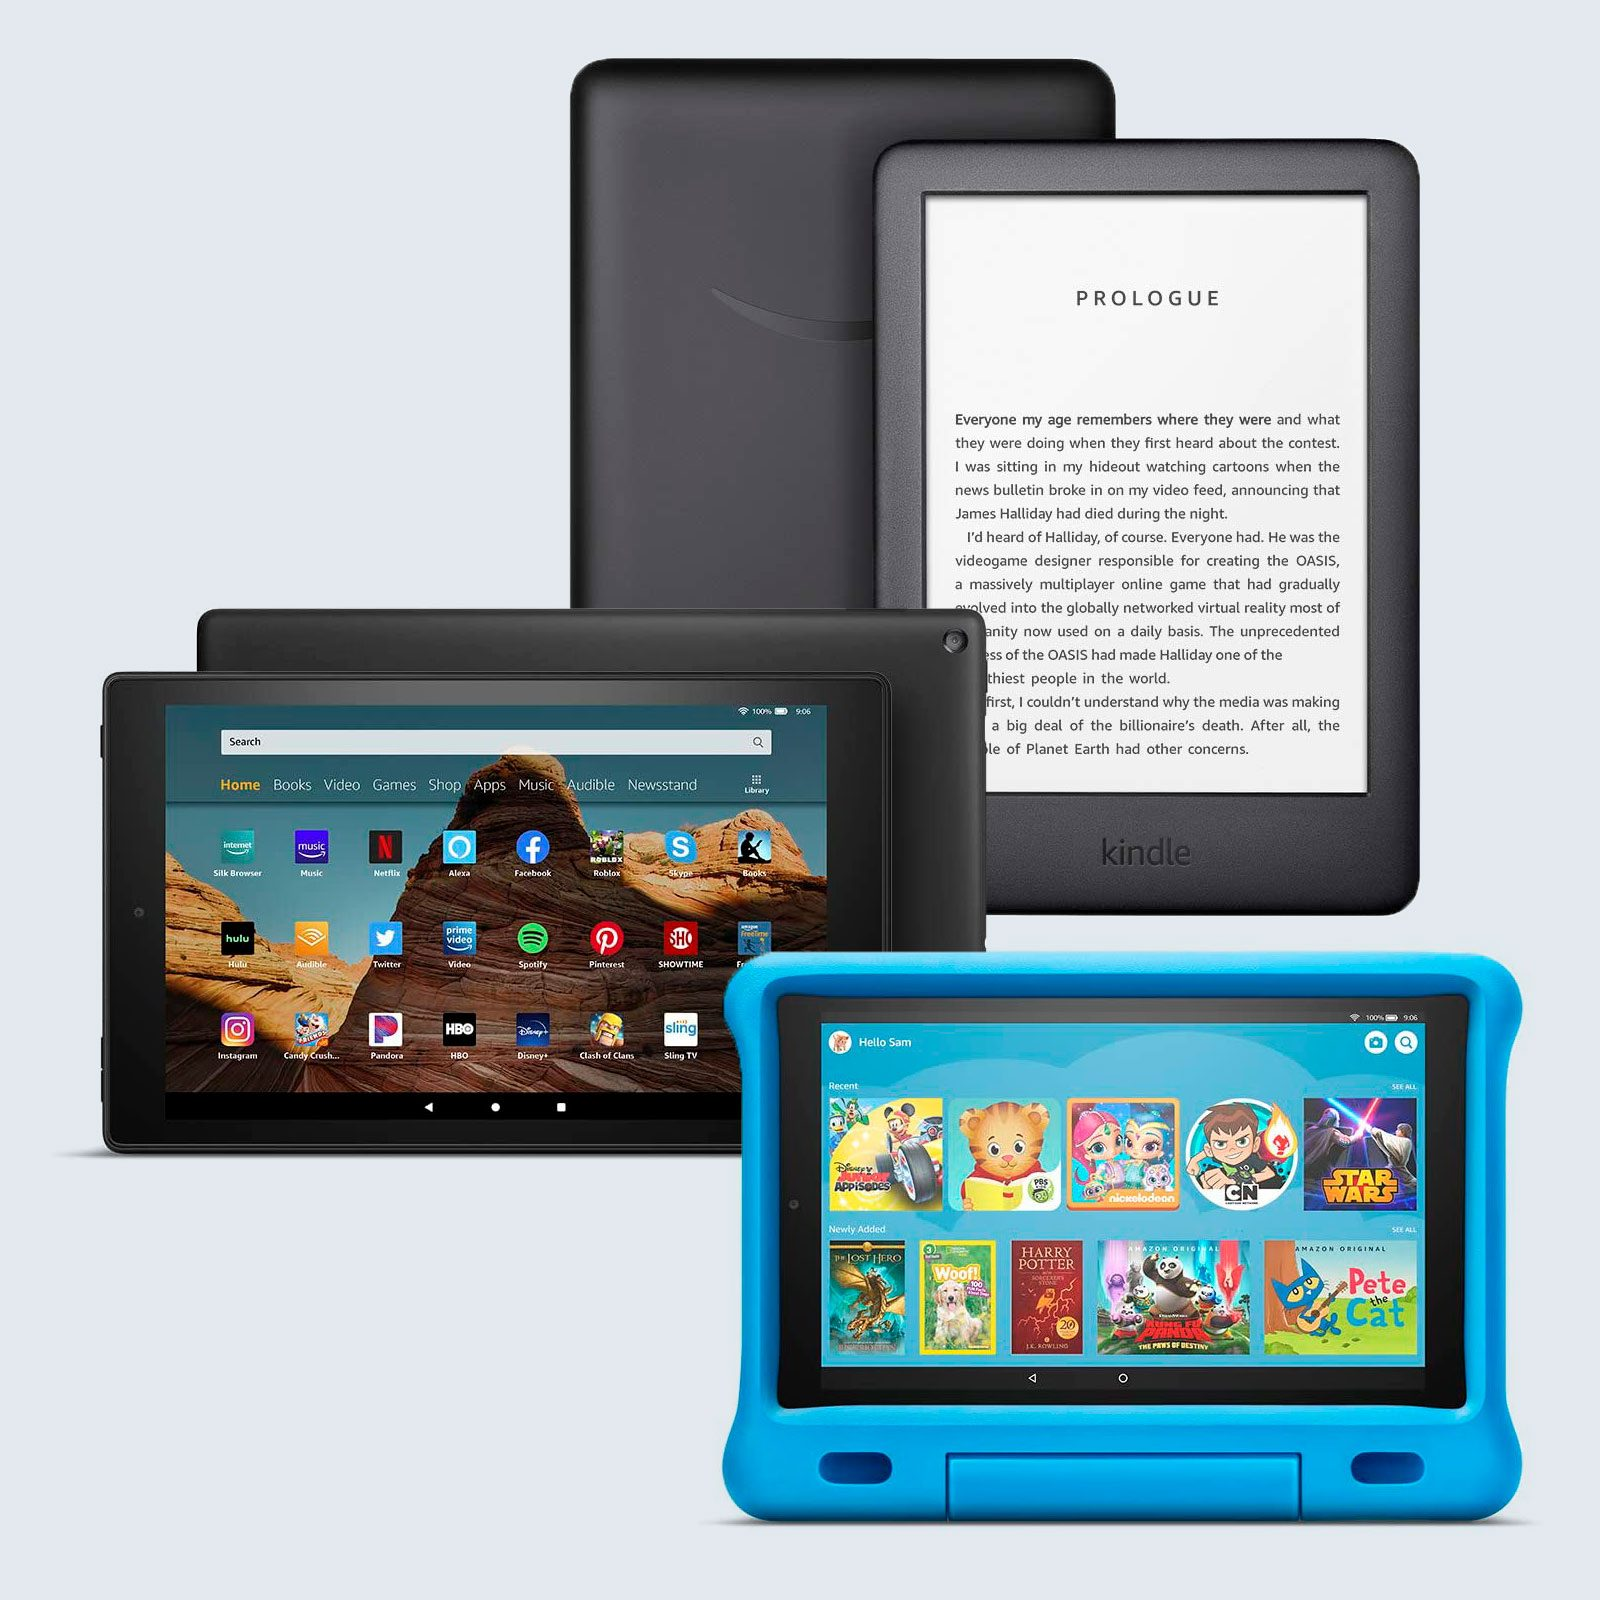 kindle, fire hd 10 tablet, and fire hd 10 kids edition